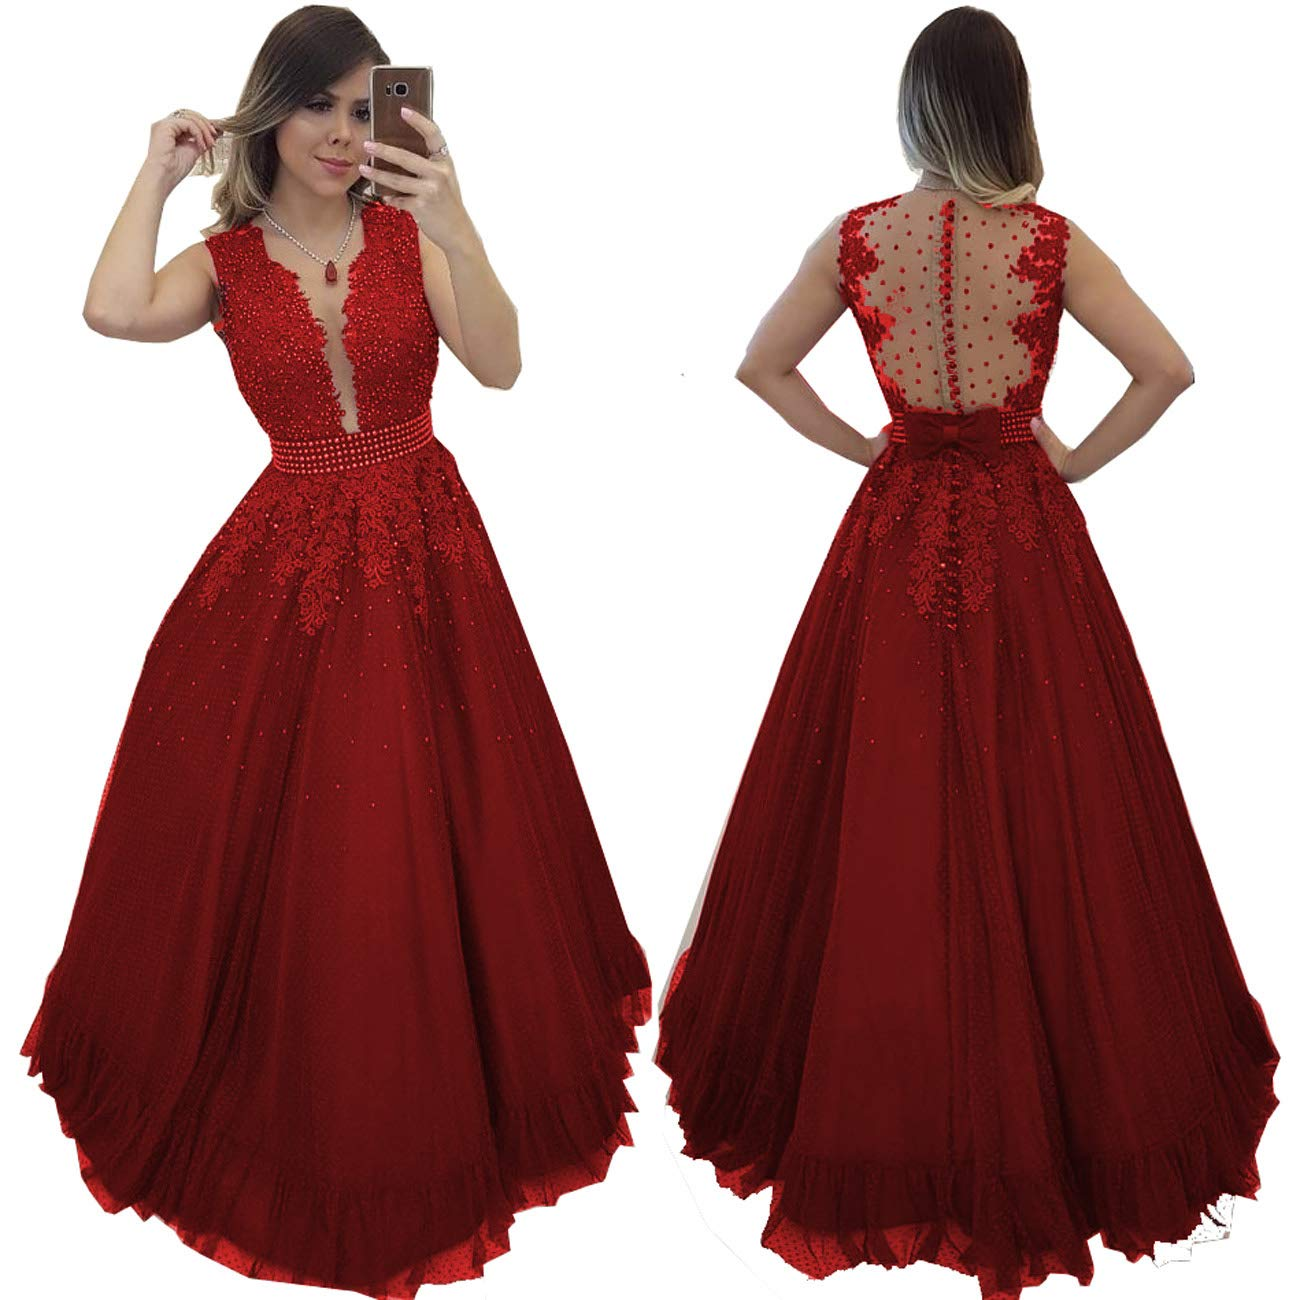 Dark Red MariRobe Women's Beaded Lace Applique Prom Dresses Illusion Back Deep v Neck Long Formal Gowns